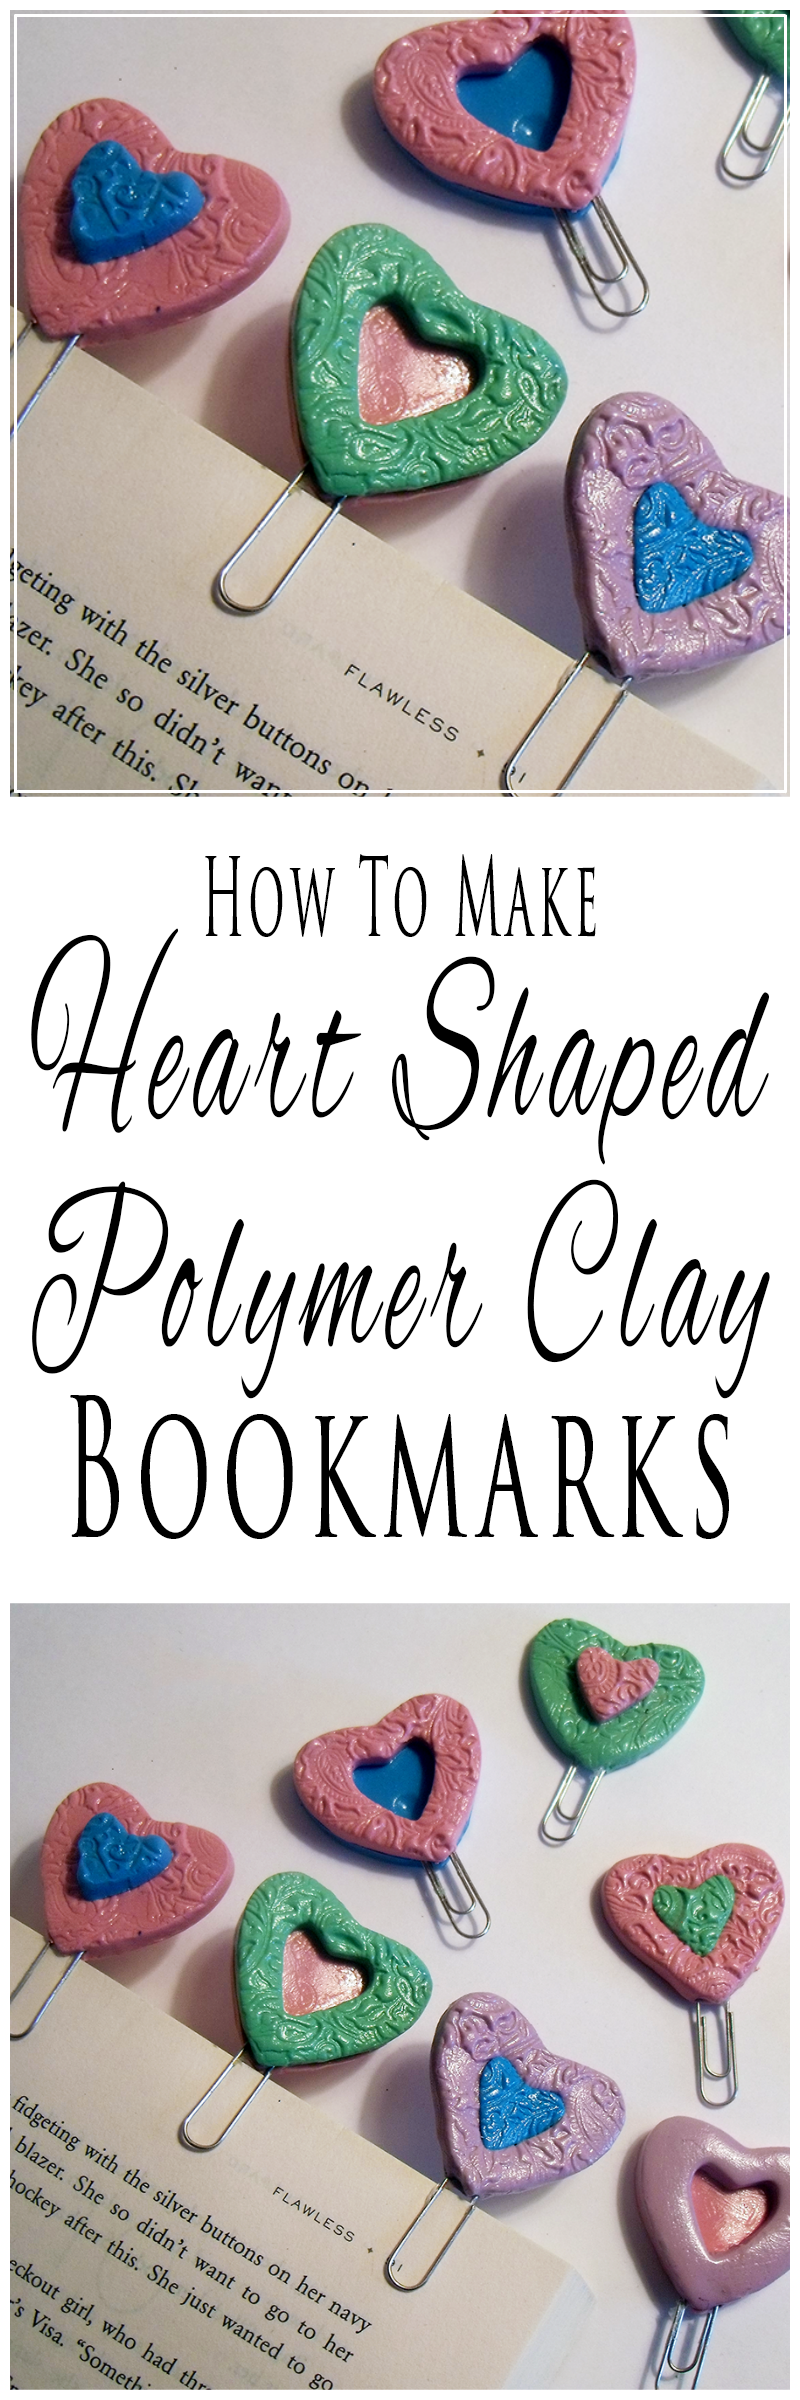 How To Make Polymer Clay Paperclip Bookmarks